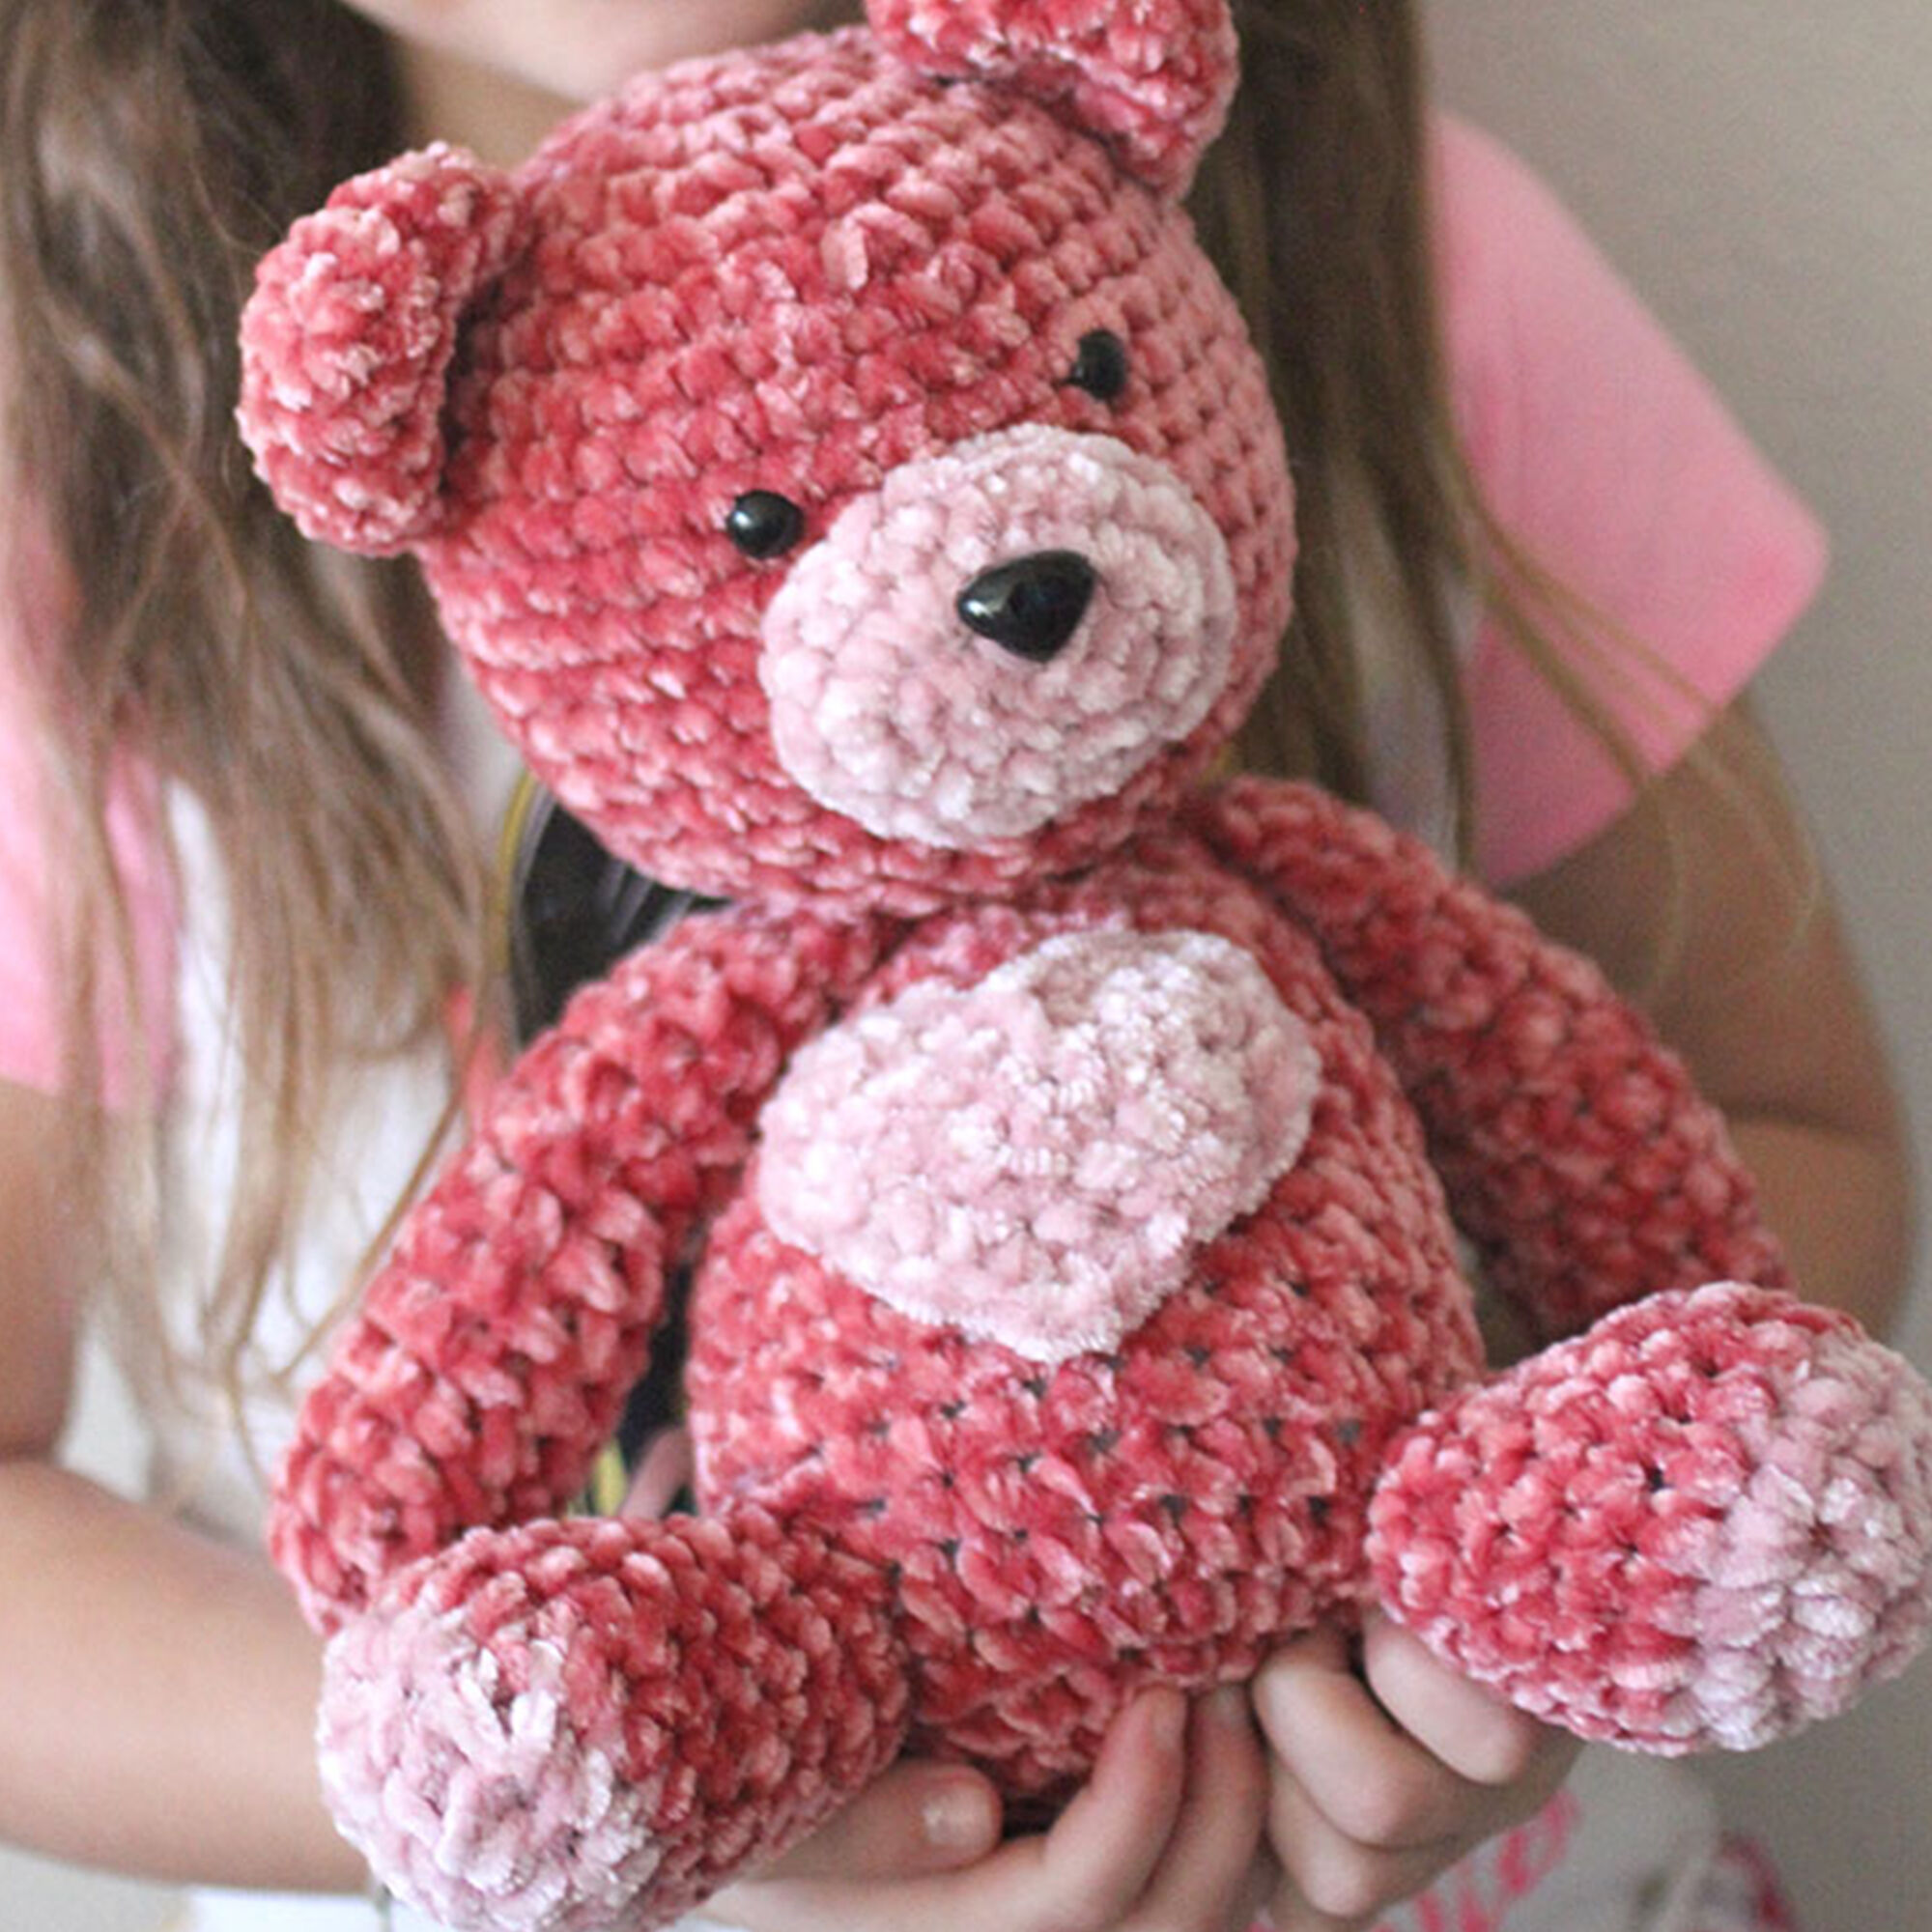 Teddy Bear Granny Square Blanket Pattern | Crochet teddy bear ... | 2000x2000